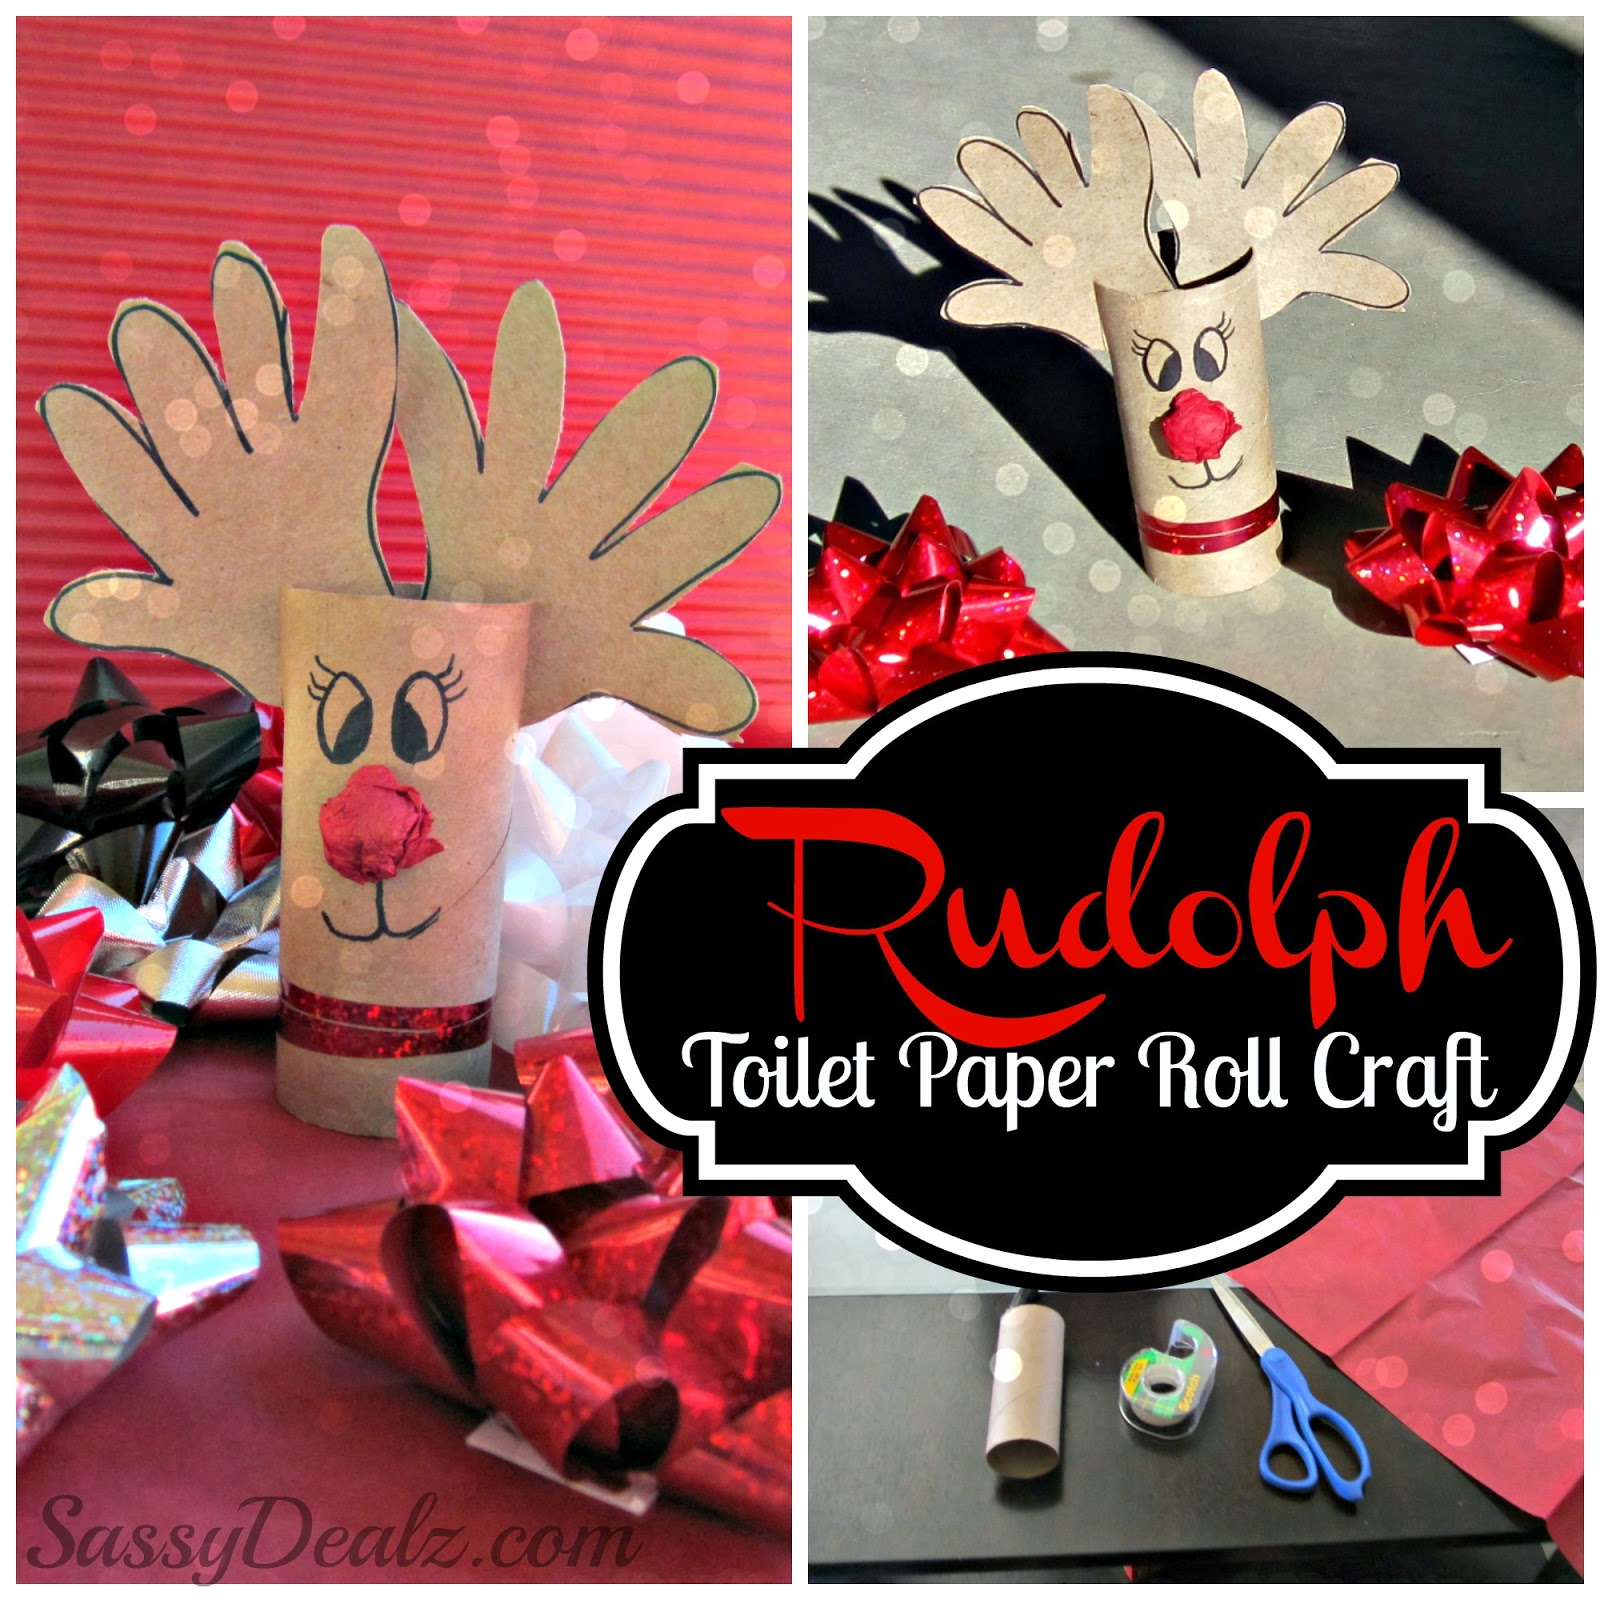 Reindeer Toilet Paper Roll Craft For Kids Rudolph at Christmas Time Christmas Craft For Kids Using Tp Roll